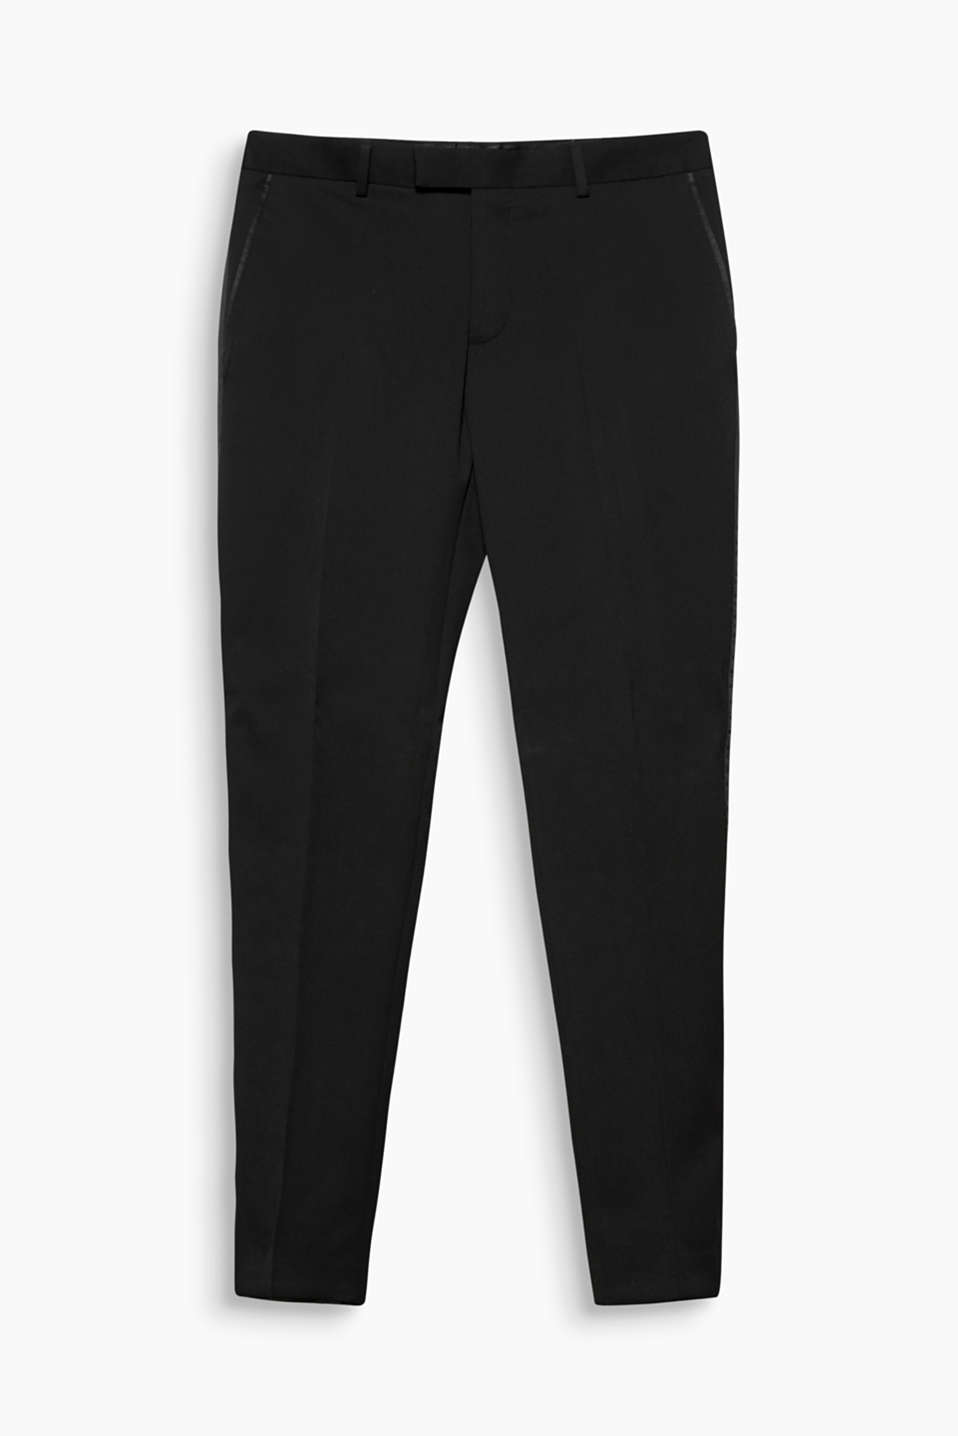 Dress code: Black tie. No problem with these classic, slim-fitting tuxedo trousers.